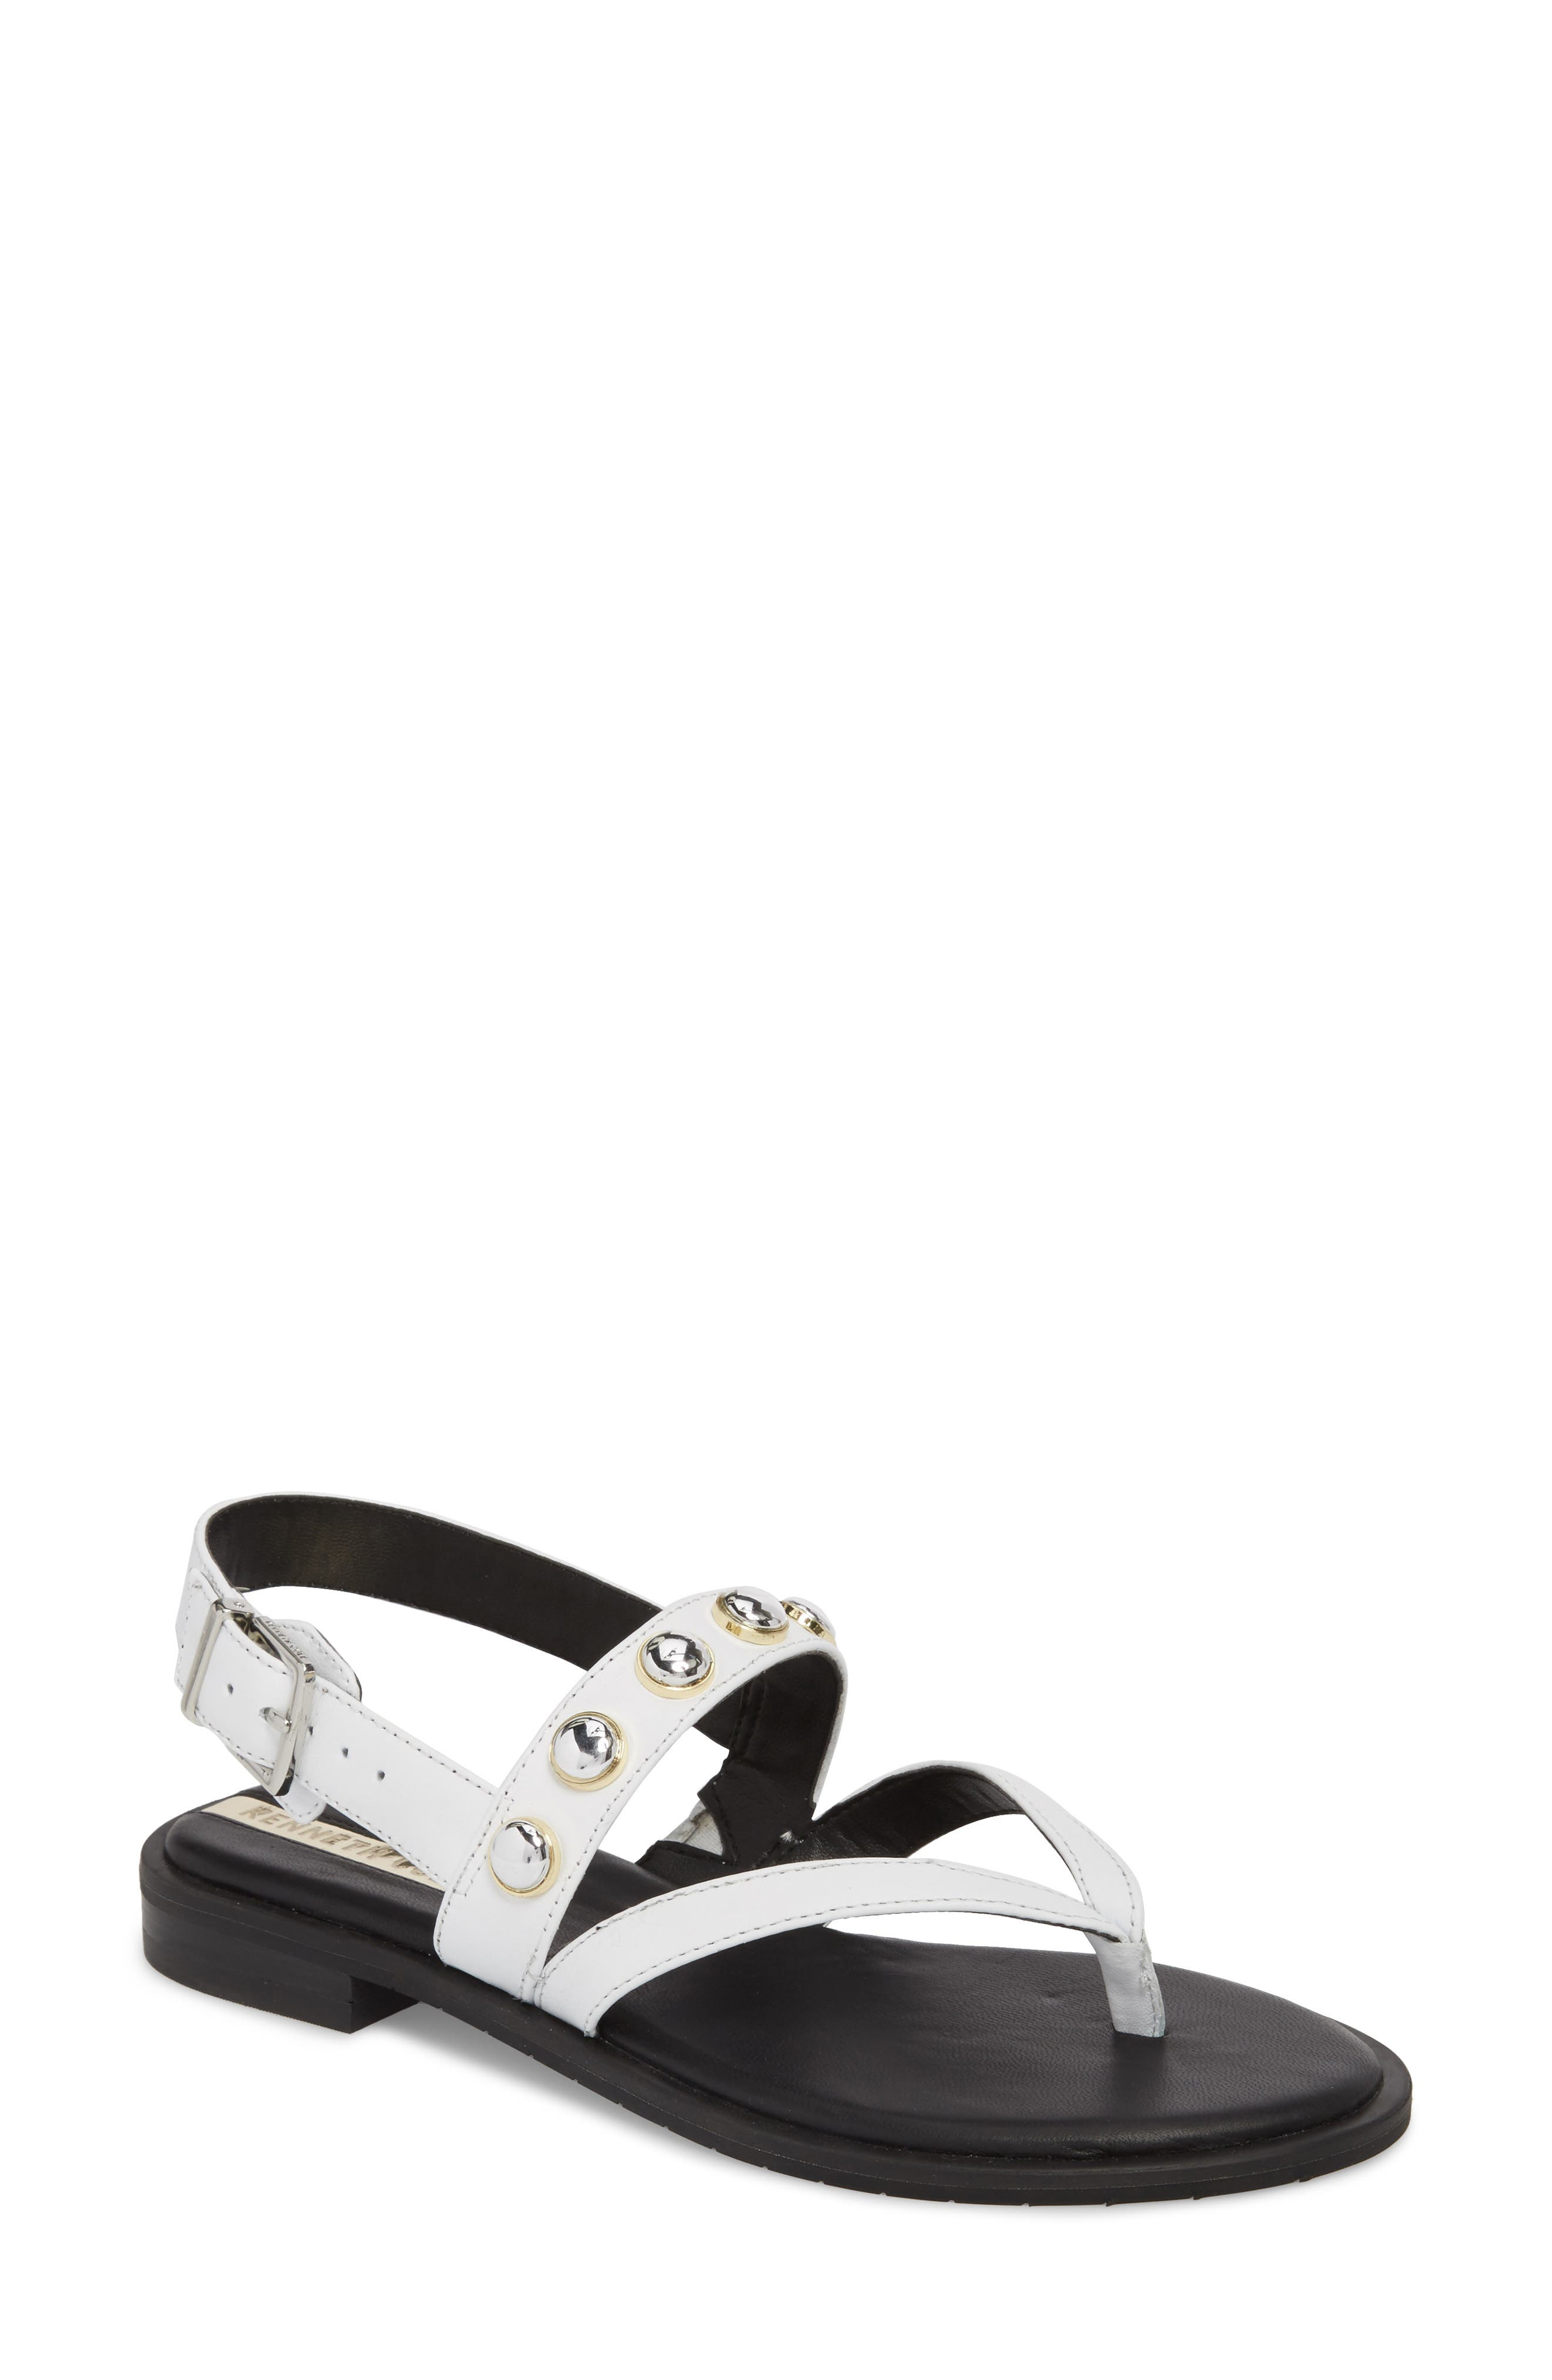 Tama Studded Sandal,                         Main,                         color, White Leather